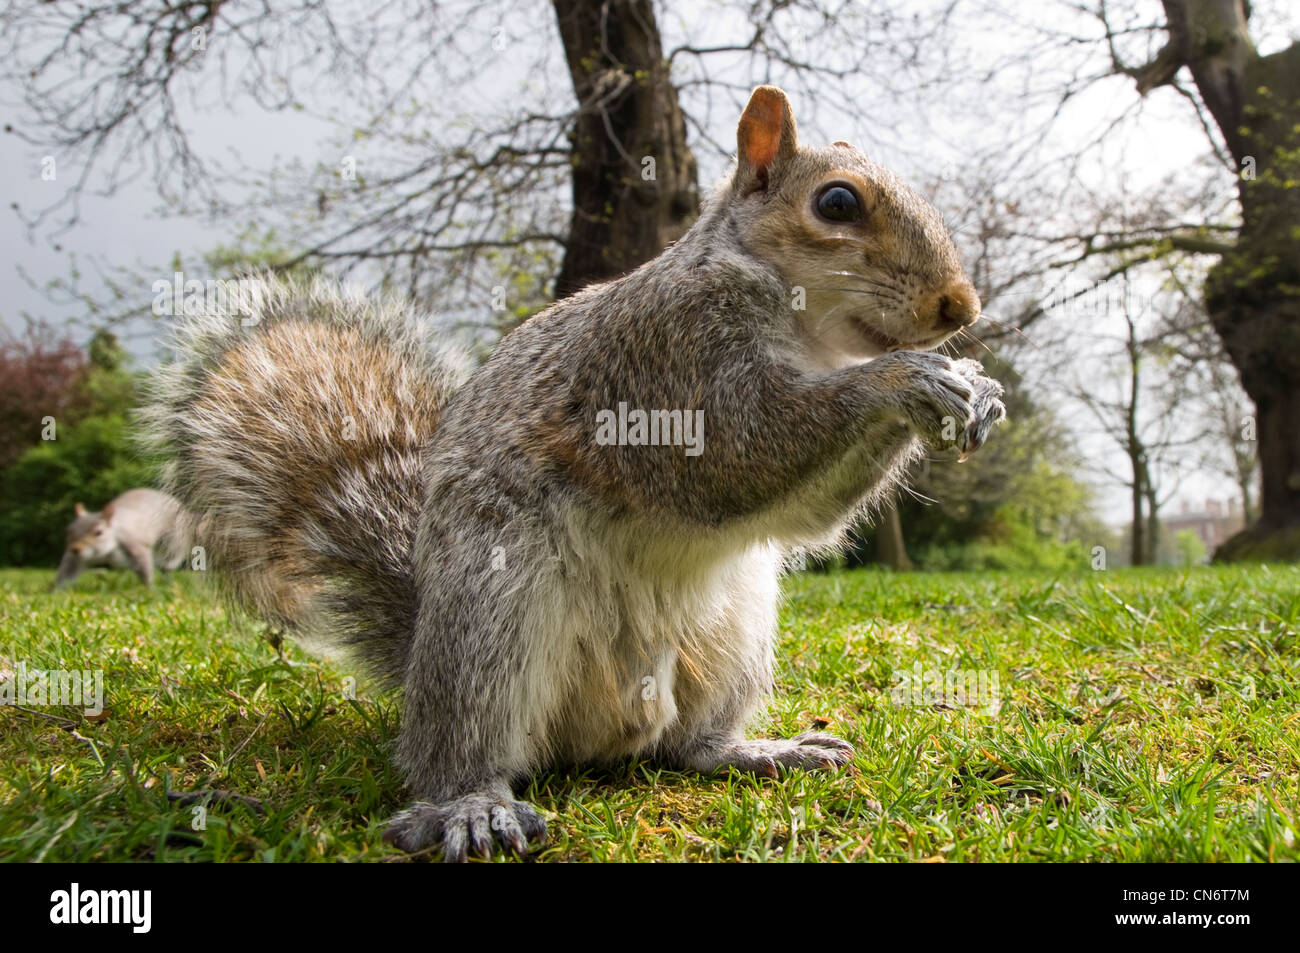 A grey squirrel on the ground and eating a nut while a second squirrel approaches in the background. April. - Stock Image